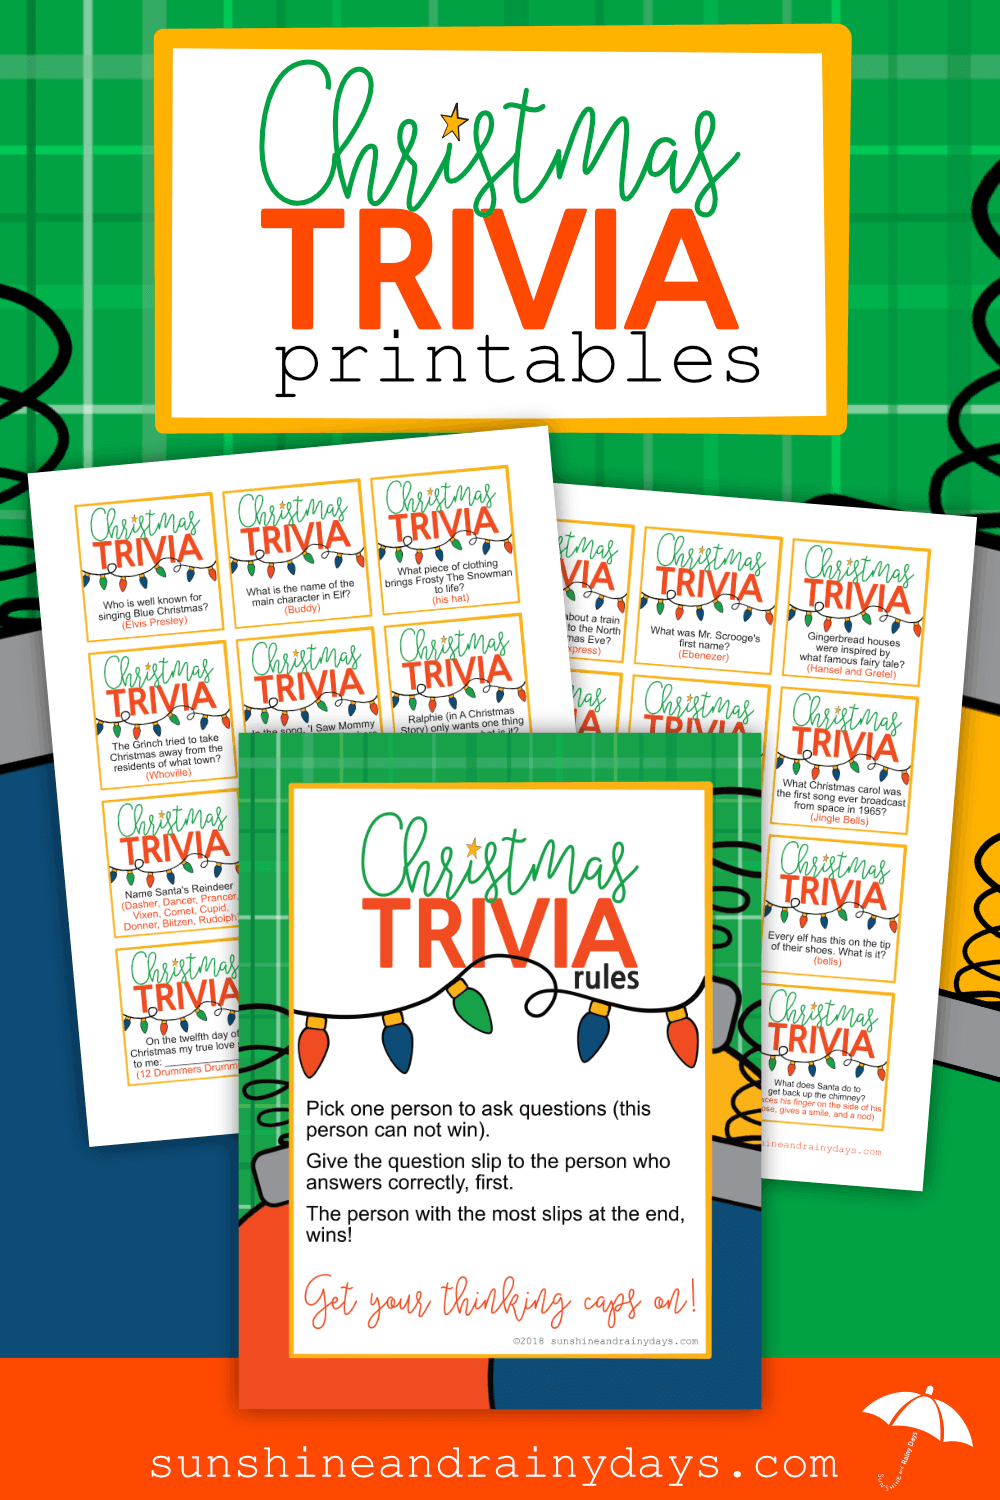 image about Christmas Trivia Game Printable titled Xmas Trivia Recreation Printables -